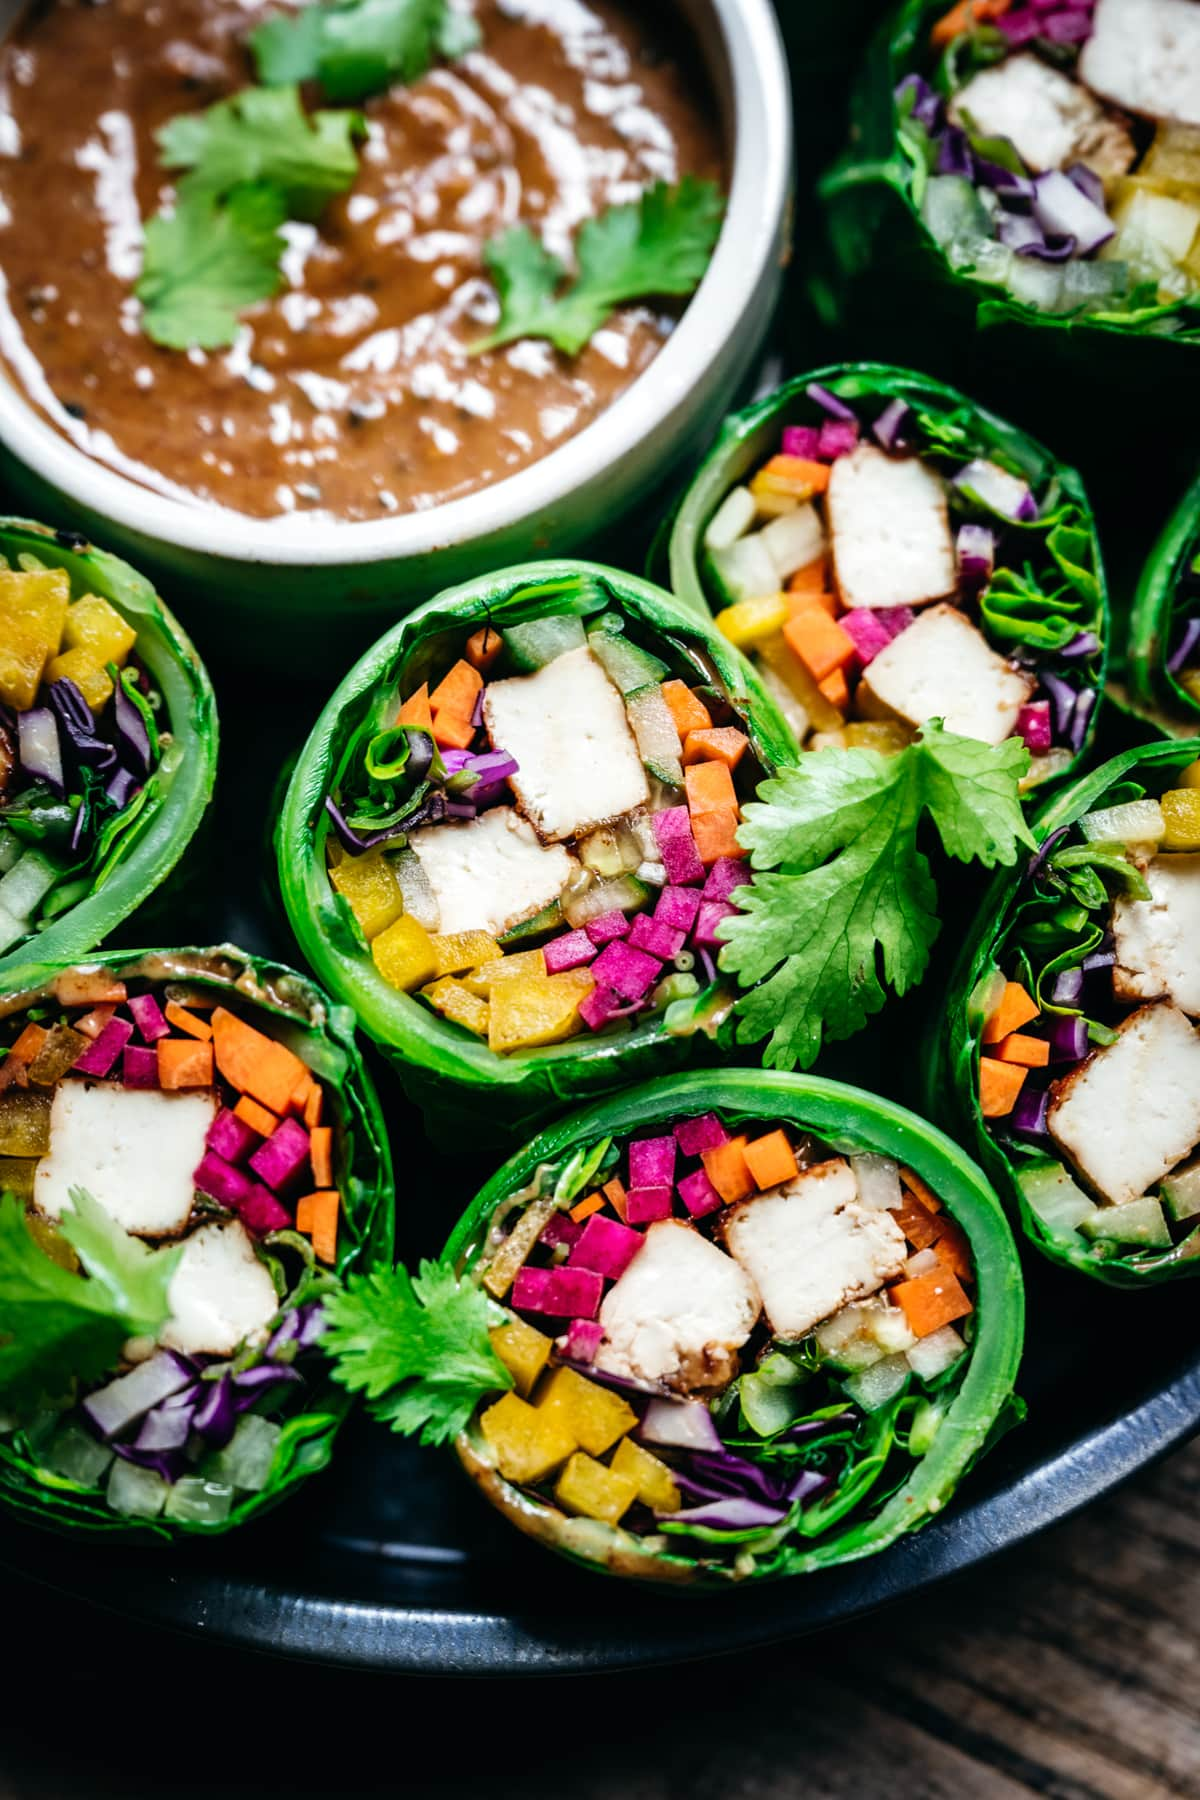 Close up view of vegan collard green wraps with vegetables and tofu cut in half with almond miso sauce